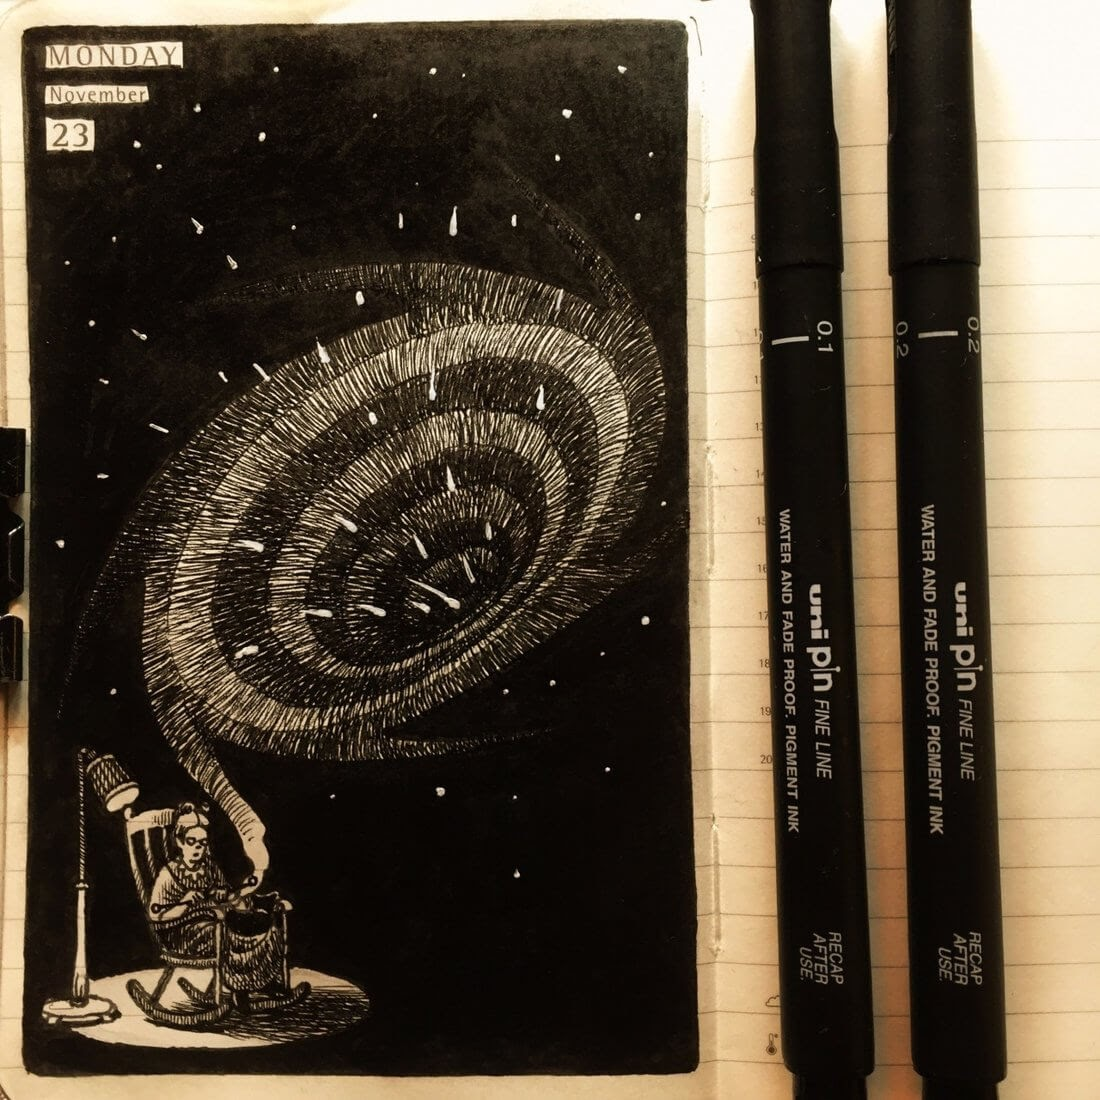 12-Knitting-a-Black-Hole-Nina-Johansson-Moleskine-Diary-of-Surreal-Ink-Drawings-www-designstack-co